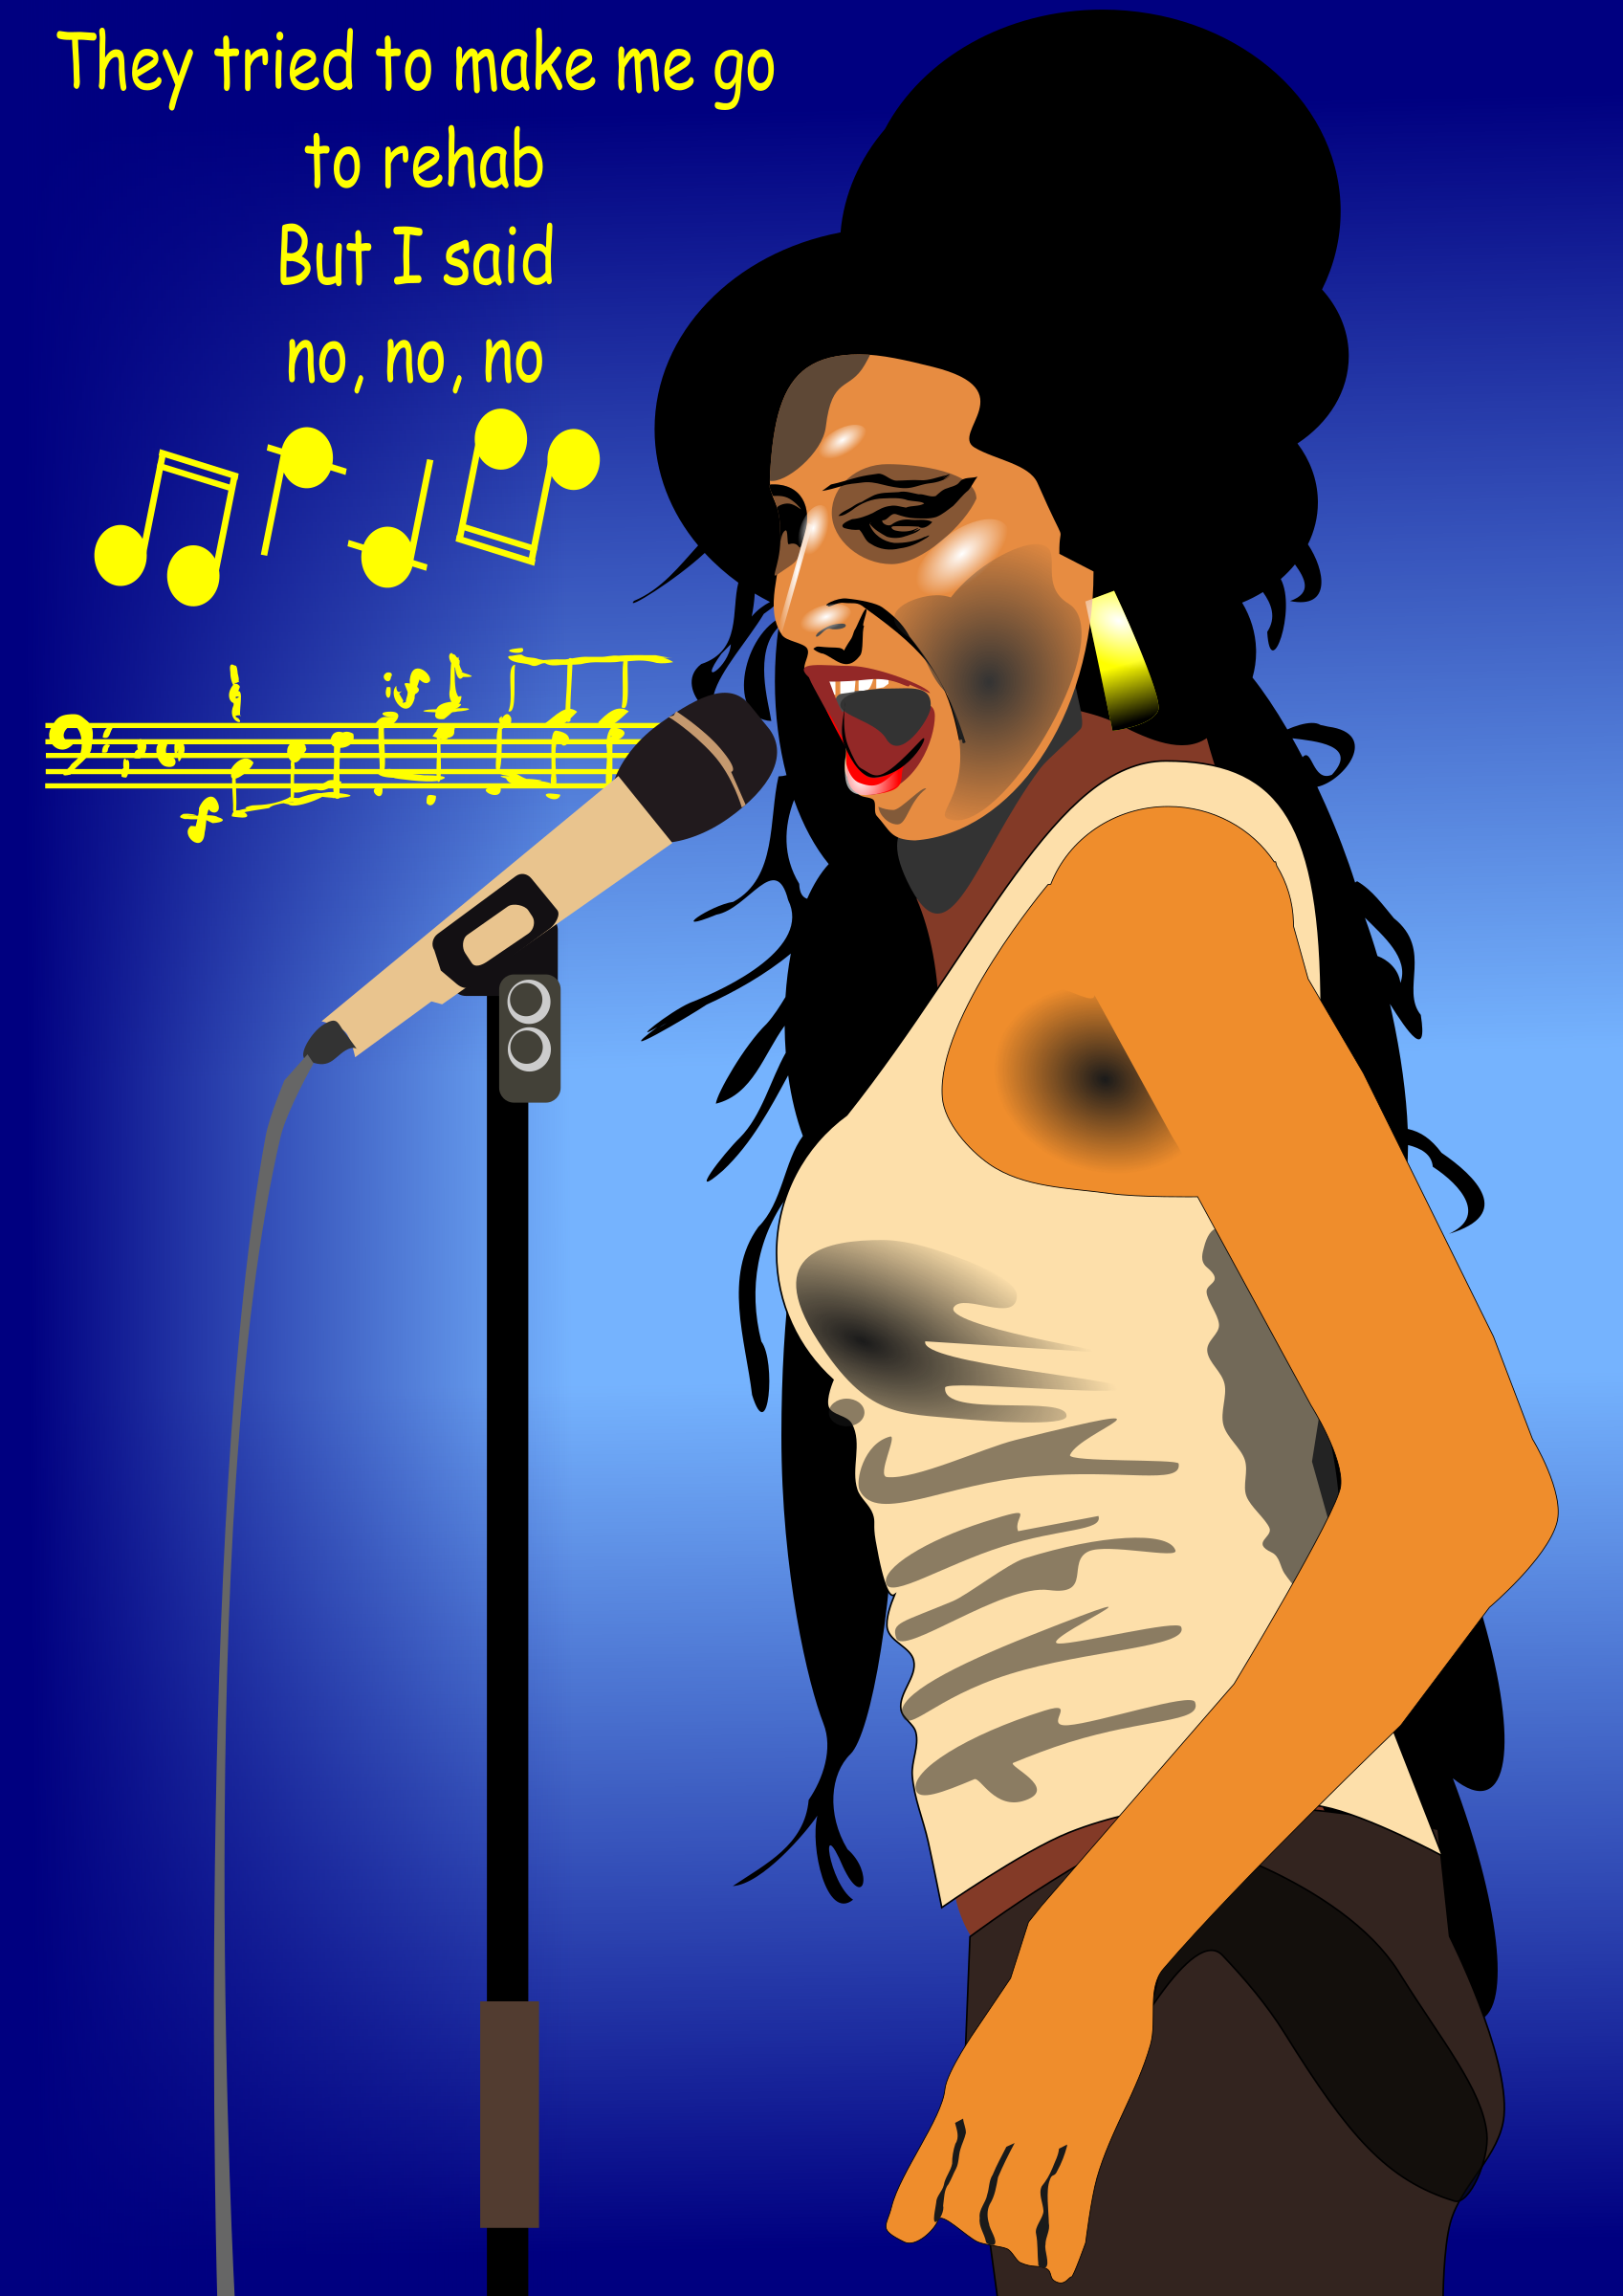 Amy Winehouse by user unknown